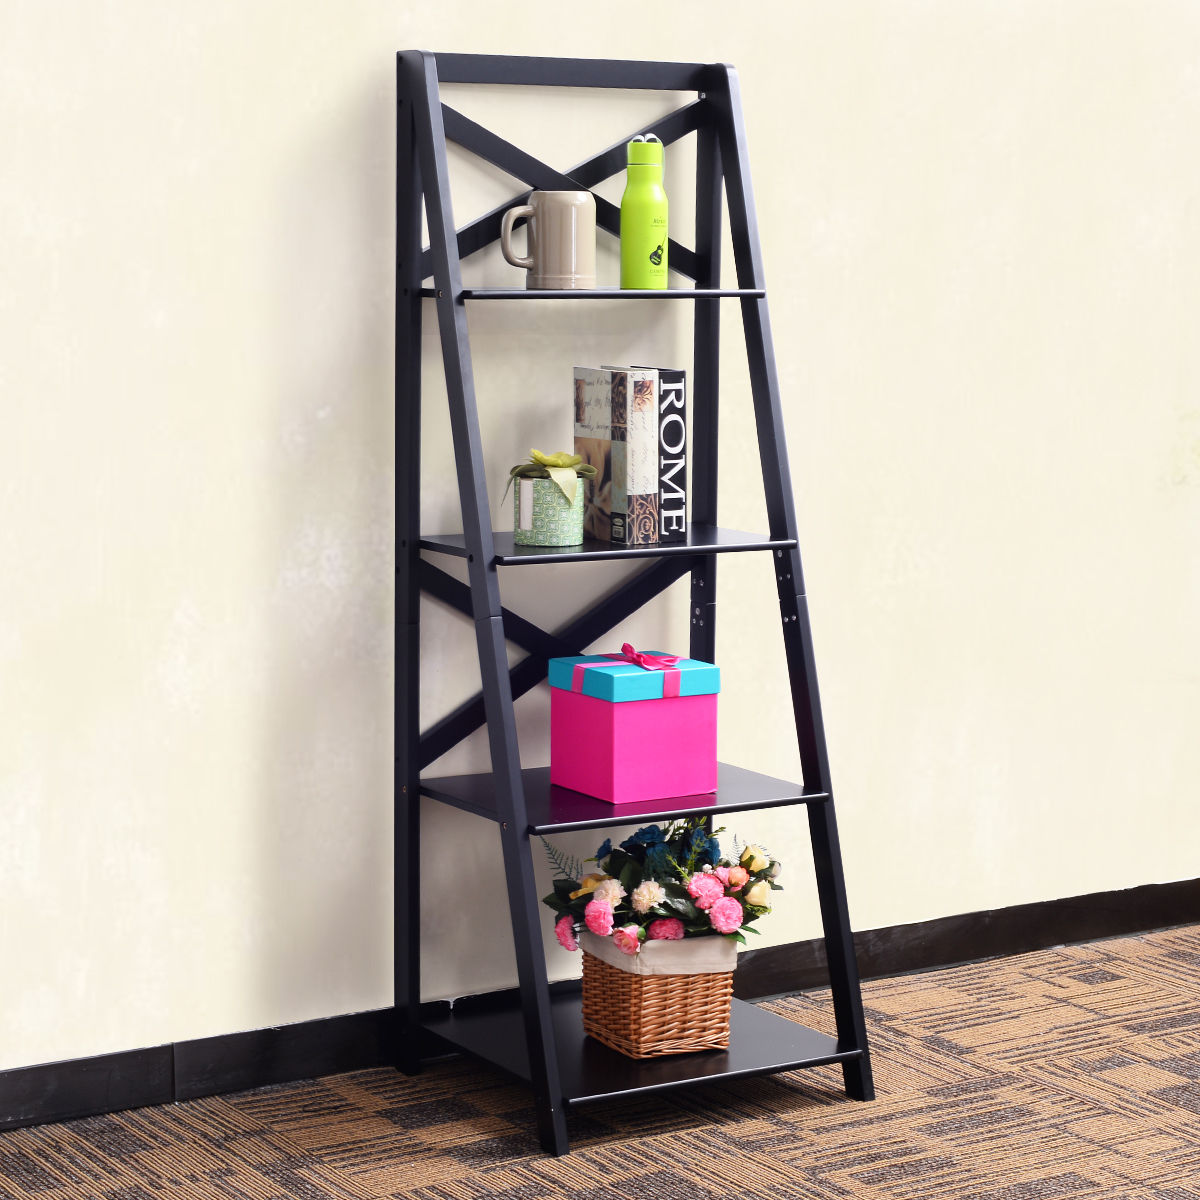 4 Tier Ladder Shelf Bookshelf Bookcase Storage Display Leaning Home Office Decor